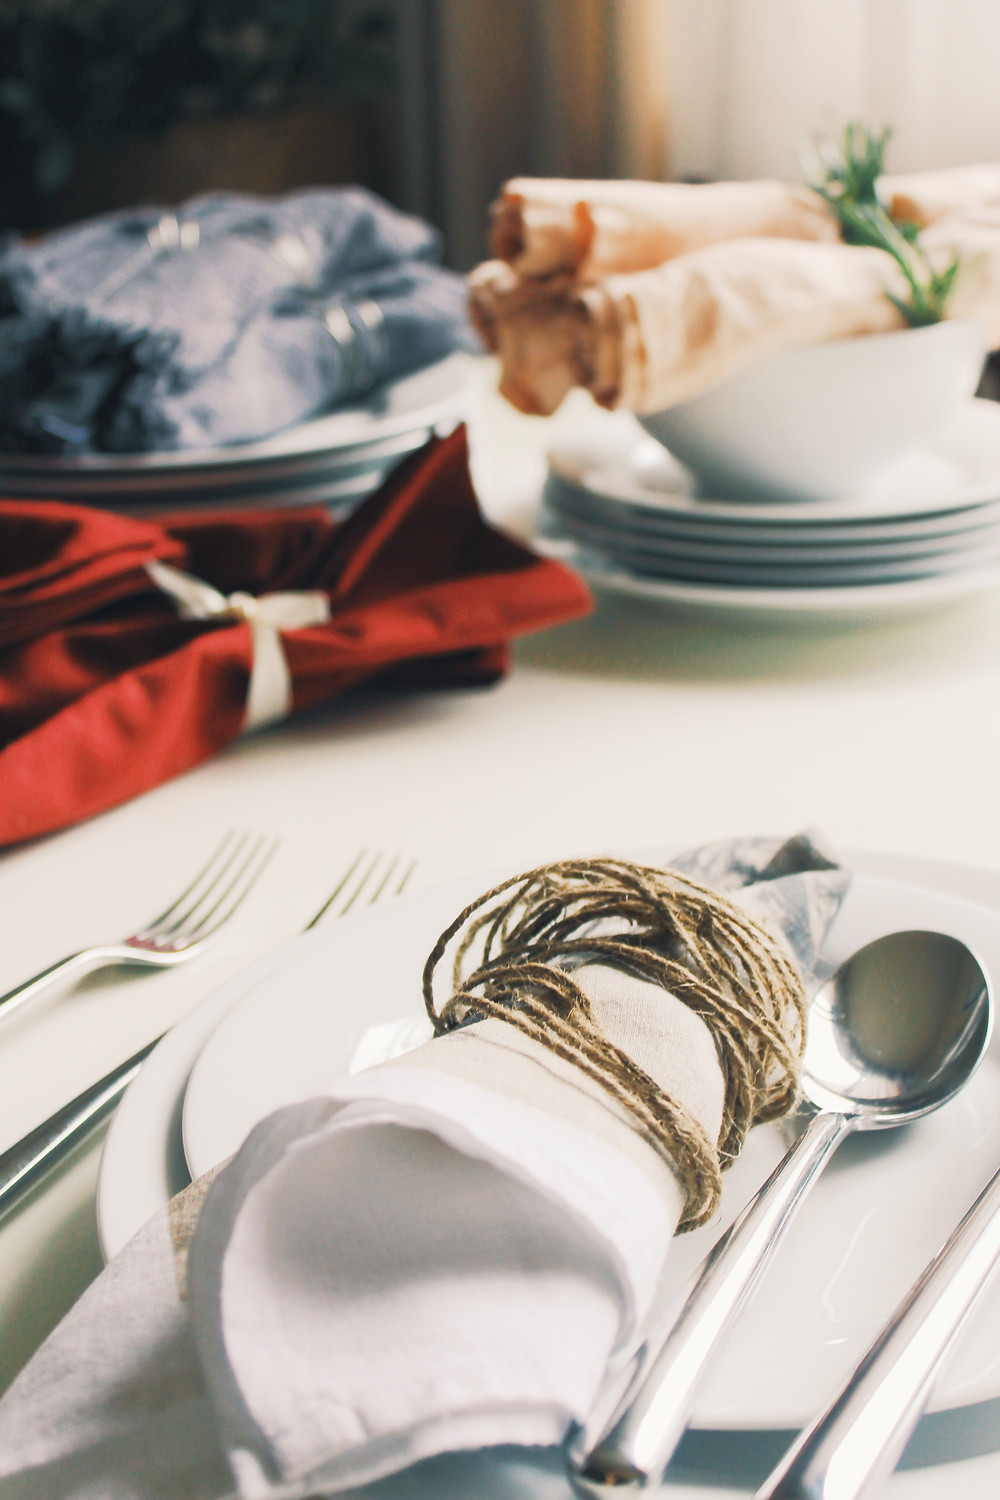 Handmade napkin rings made from twine.